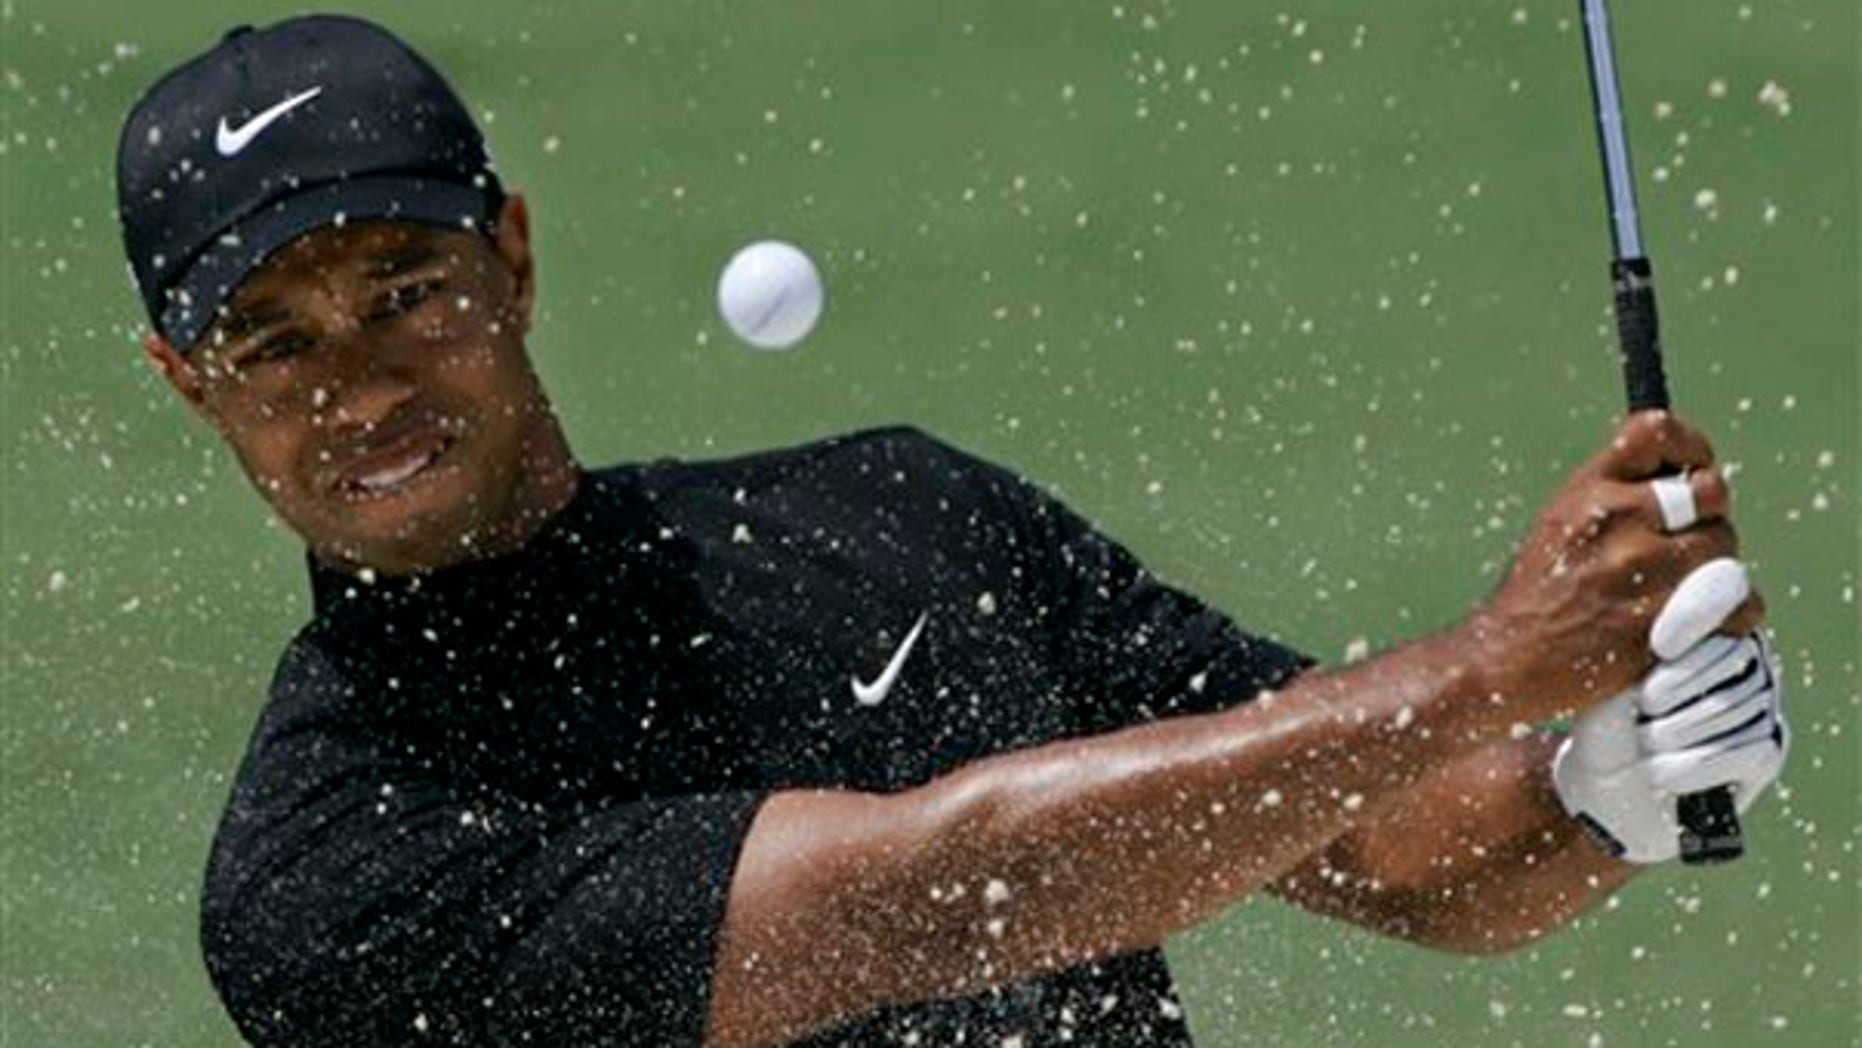 In this April 11, 2008, file photo, Tiger Woods hits out of a bunker on the second hole at the Augusta National Golf Club. (AP Photo)